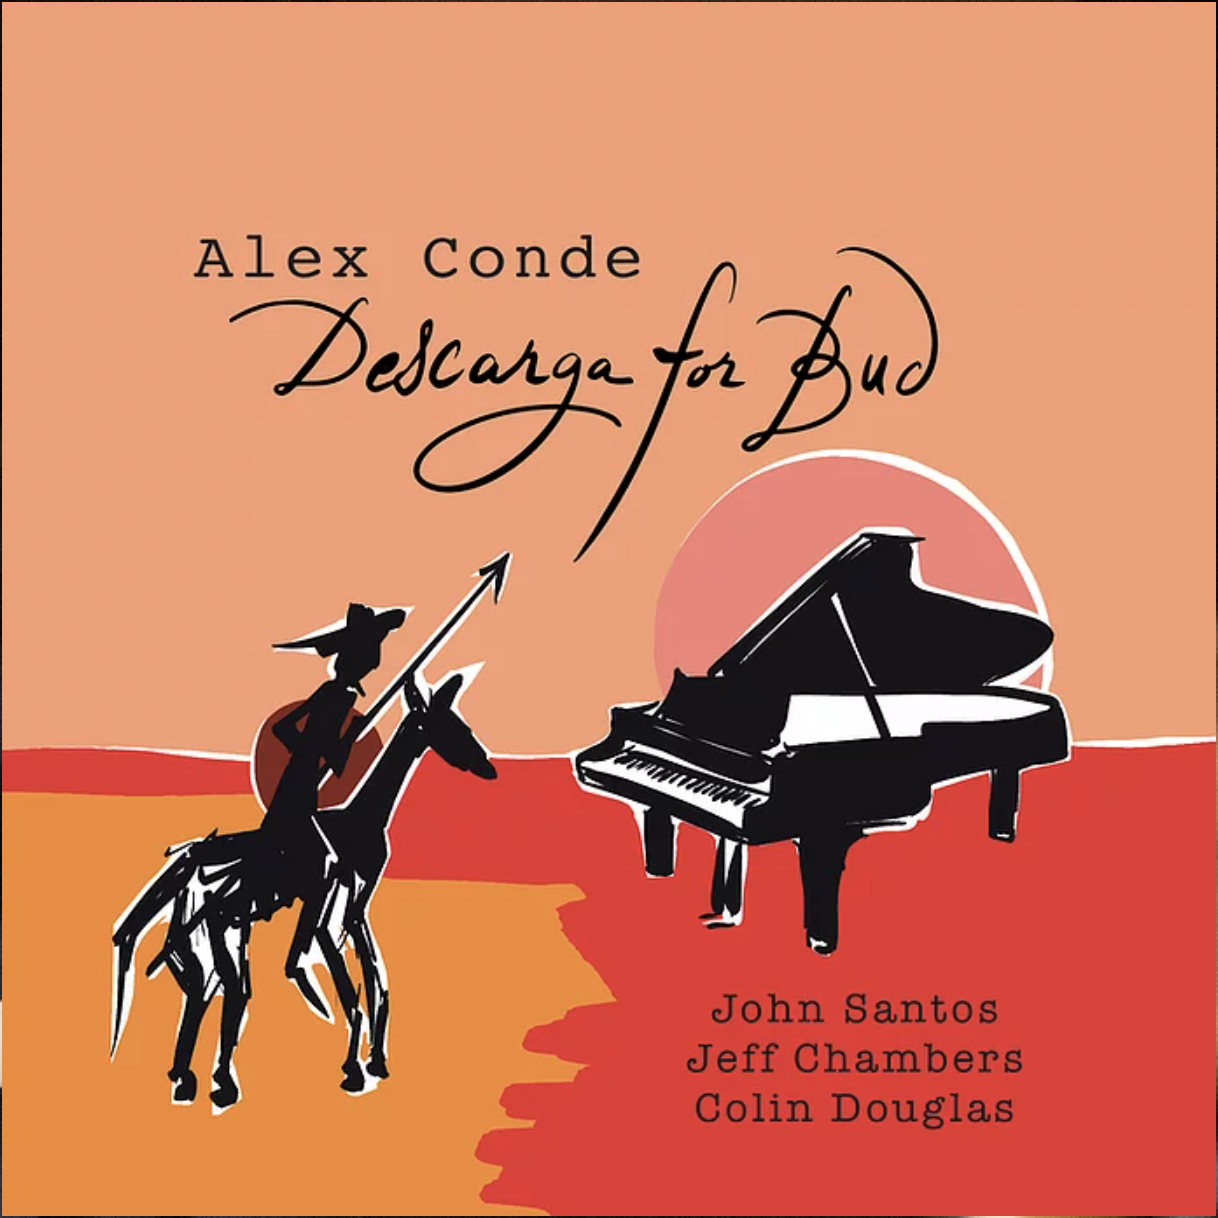 NEW RELEASE: Alex Conde's DESCARGA FOR BUD due out May 28, 2021 via Sedajazz